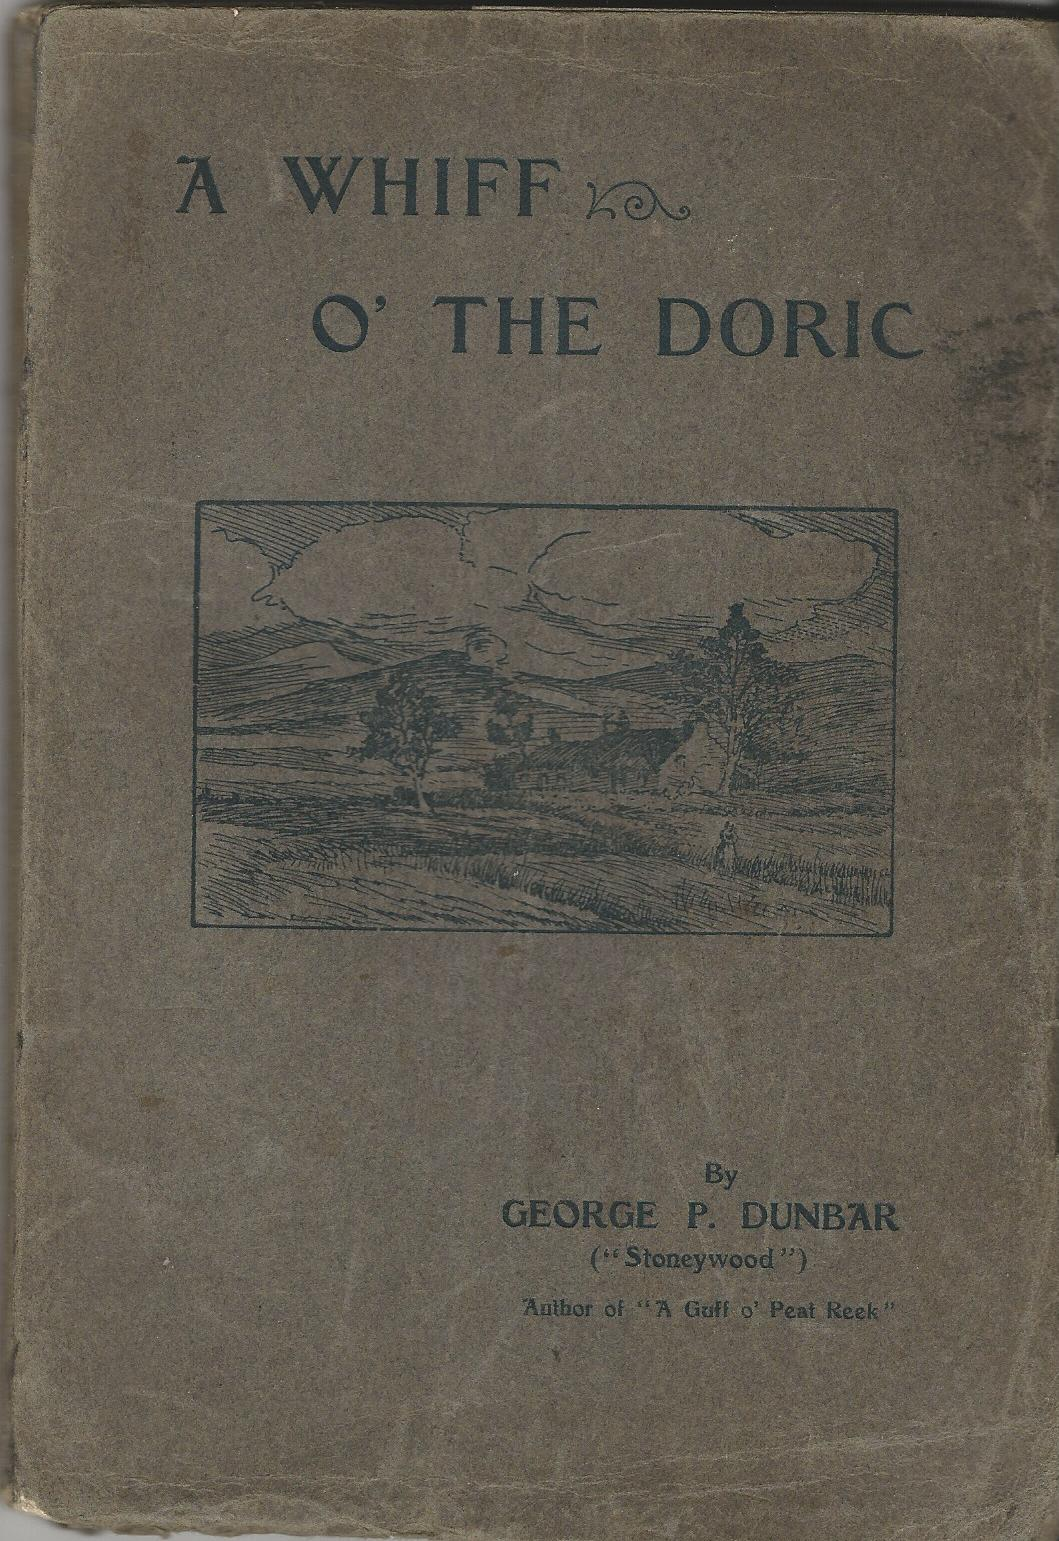 Image for A Whiff o' The Doric.